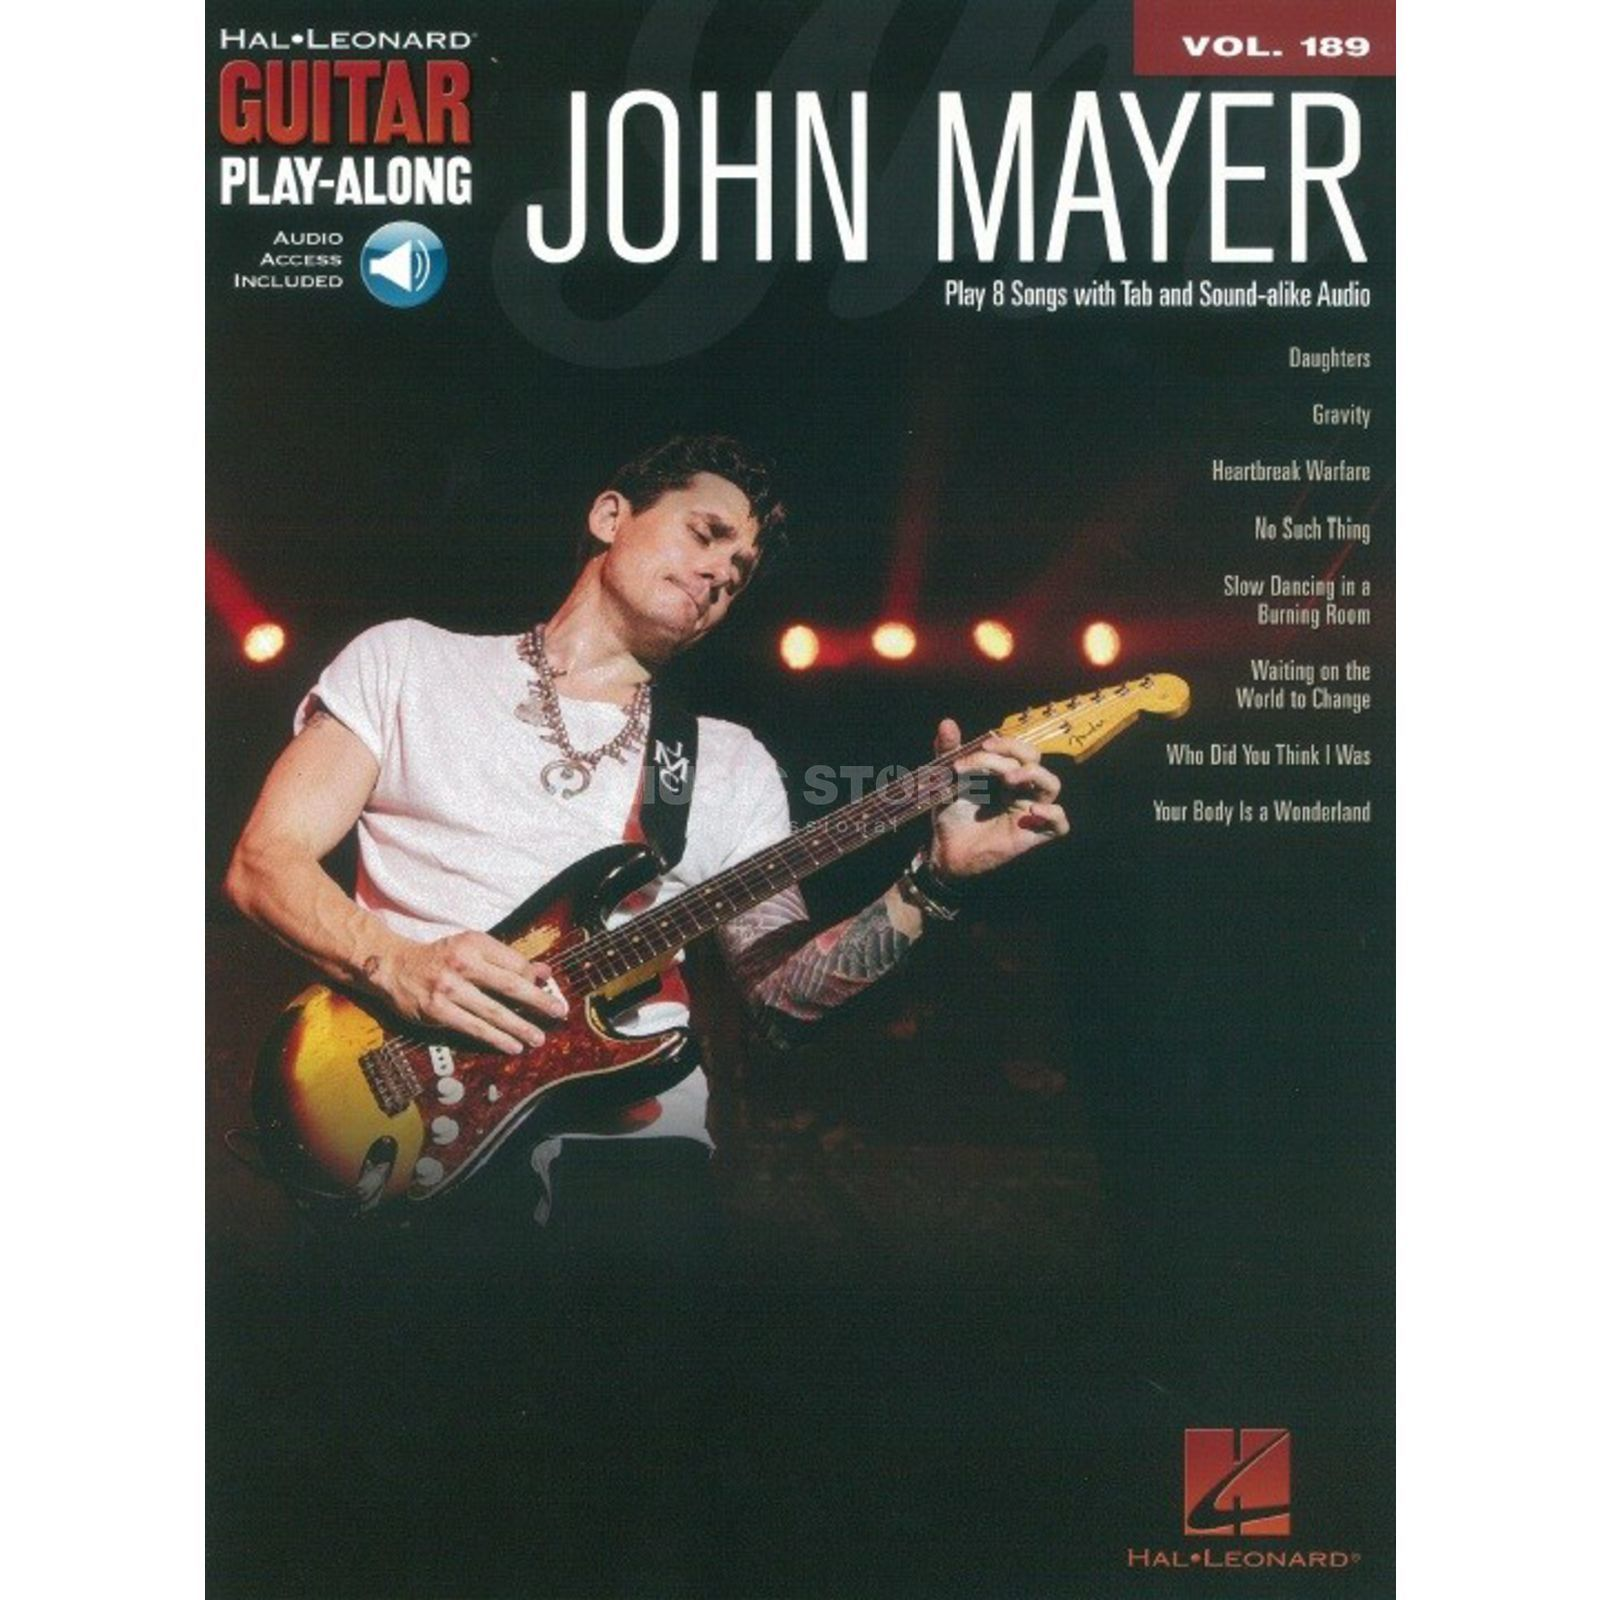 Hal Leonard Guitar Play-Along: John Mayer Vol. 189, TAB und Download Εικόνα προιόντος